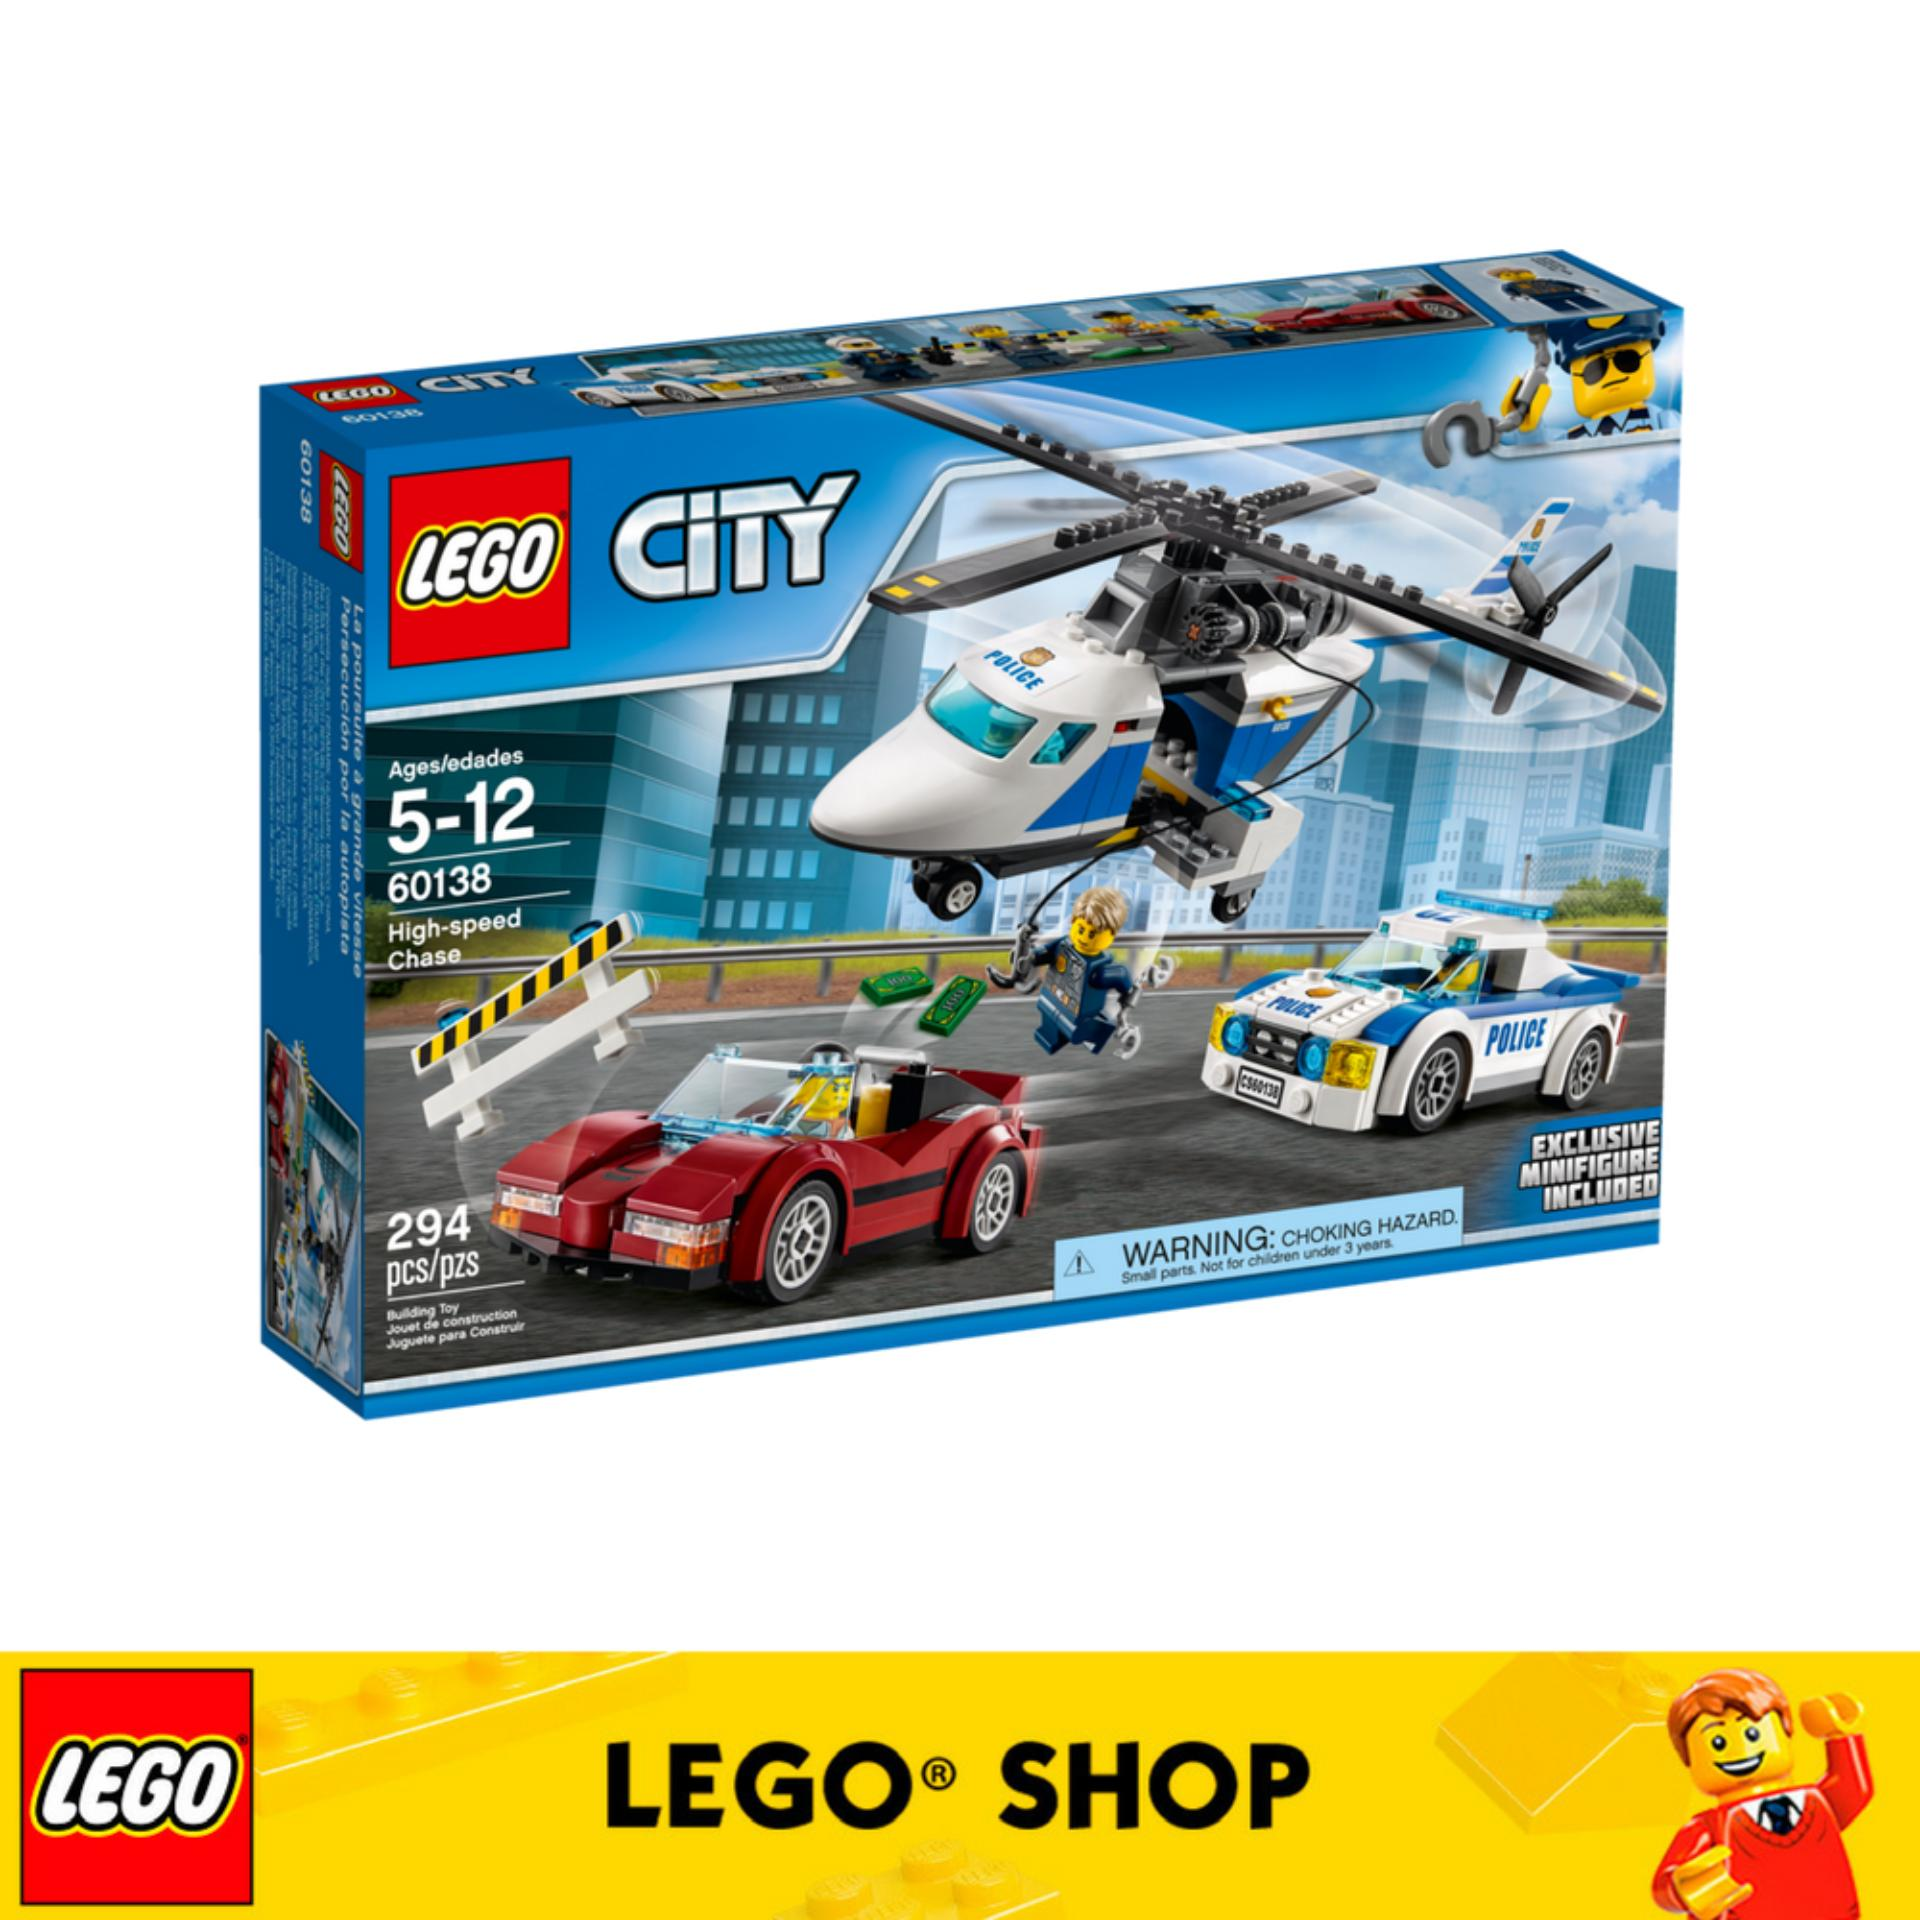 LEGO City Police High-speed Chase - 60138